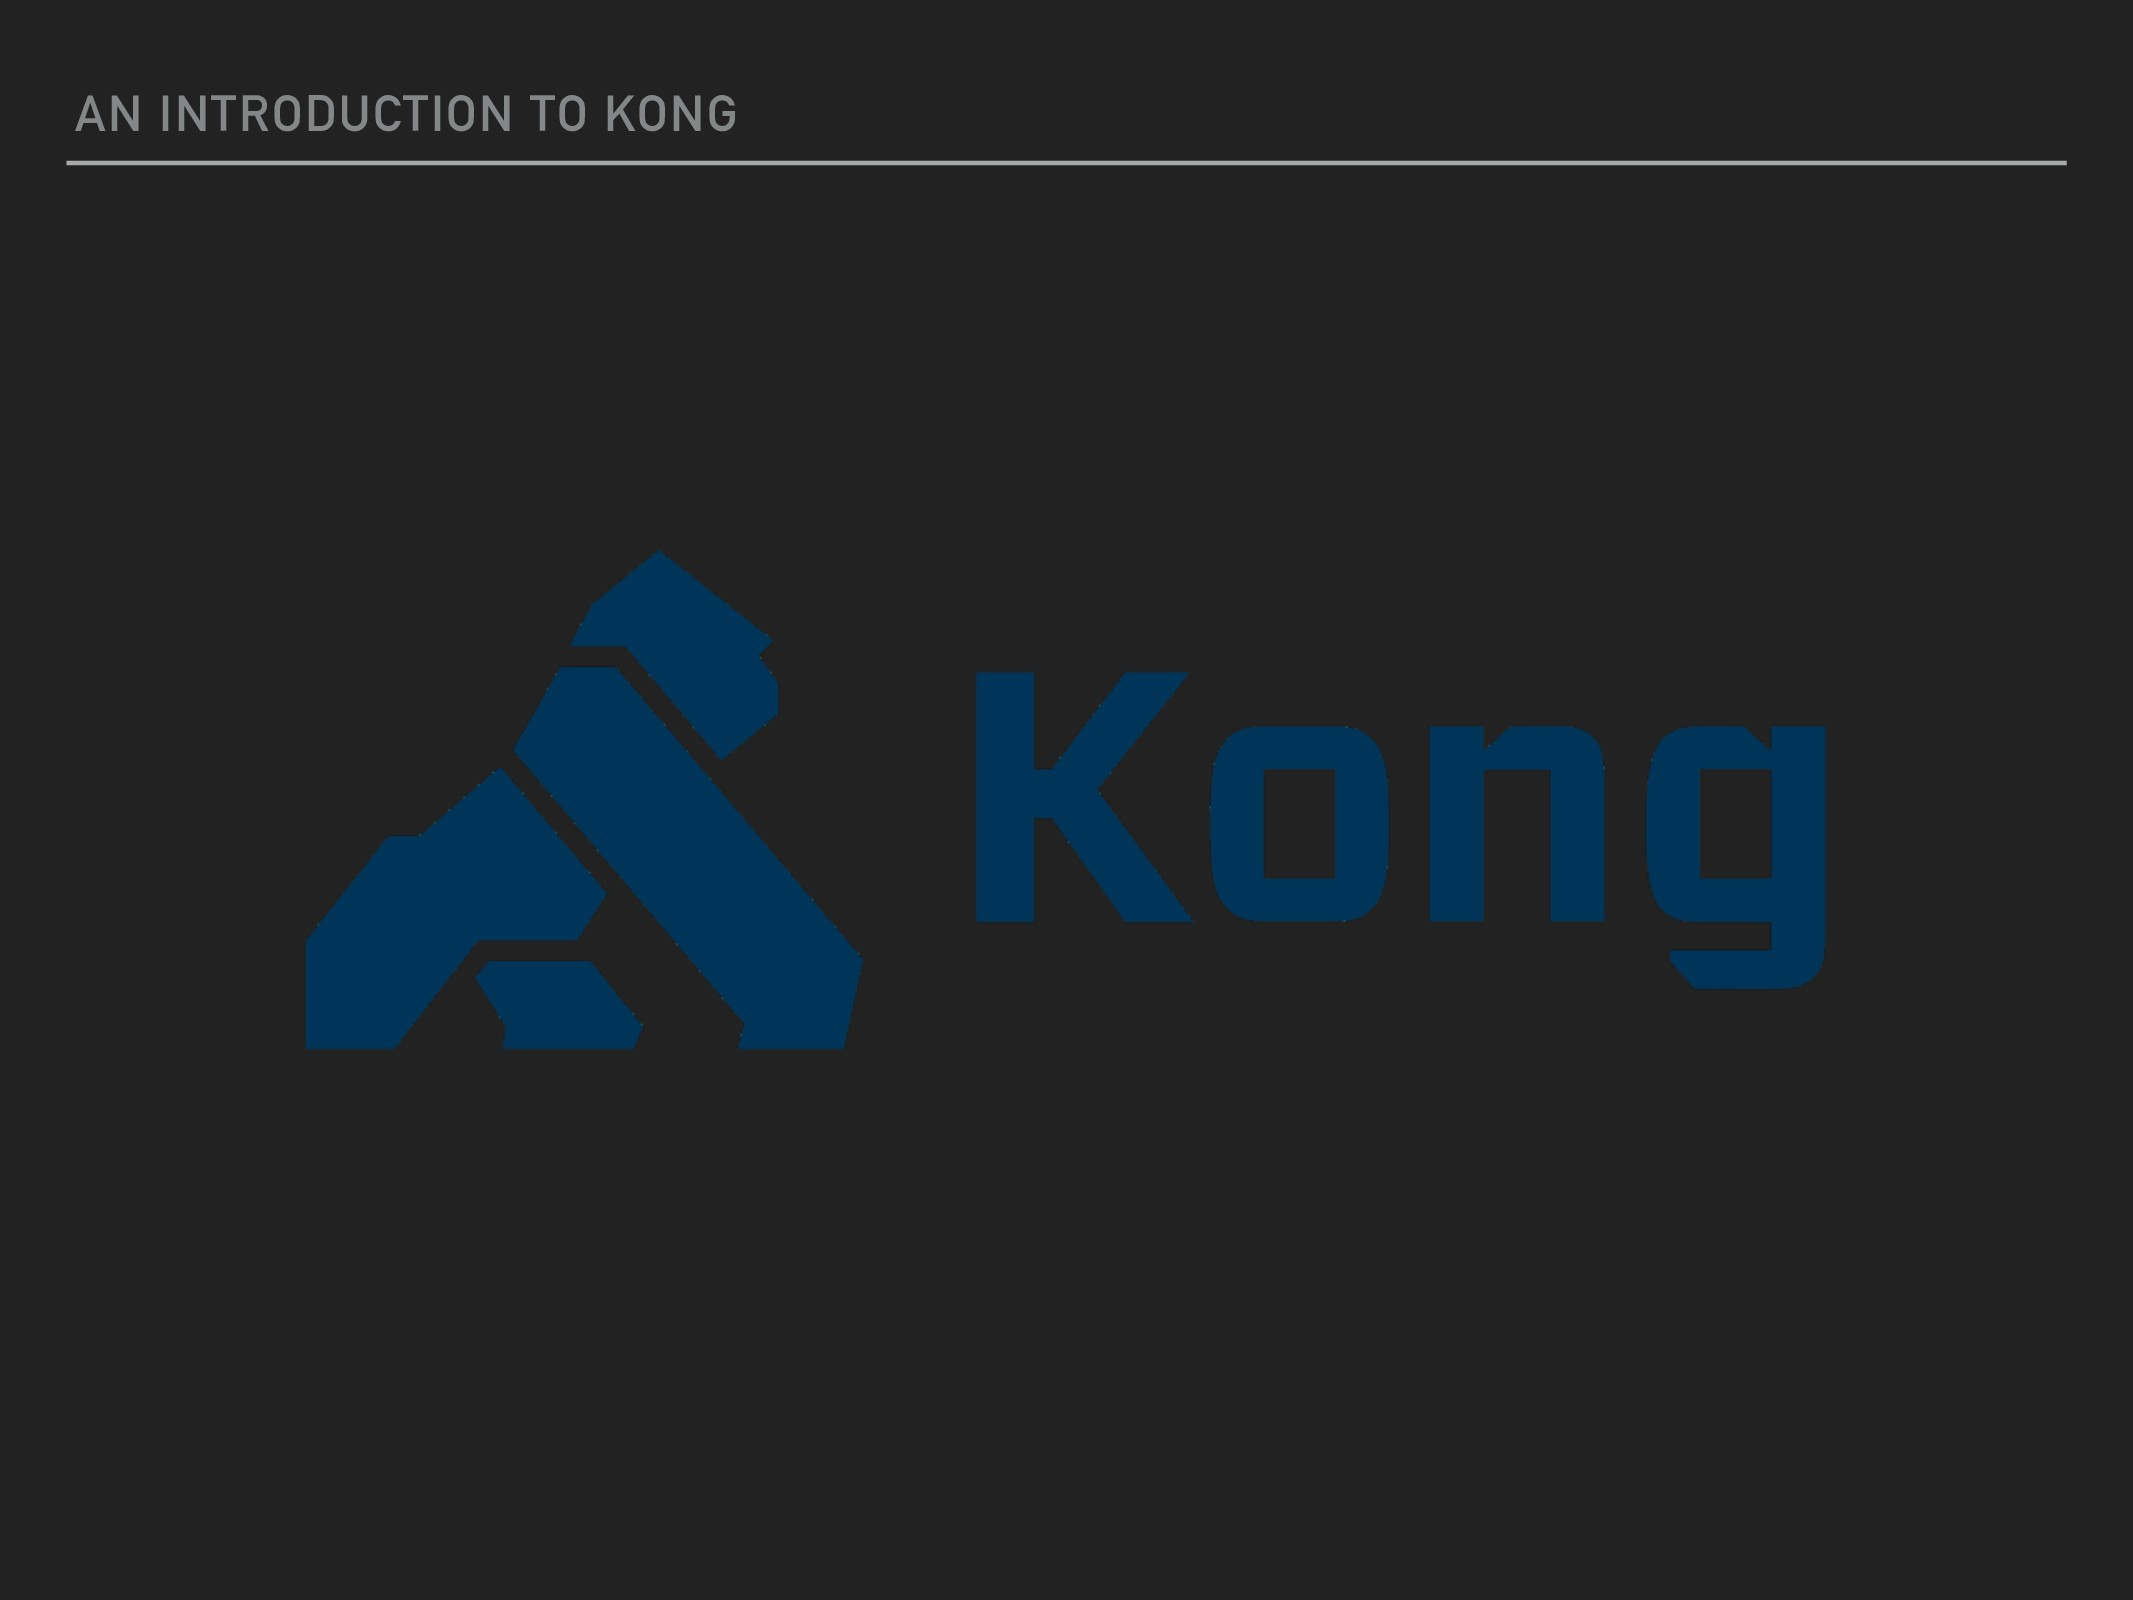 AN INTRODUCTION TO KONG